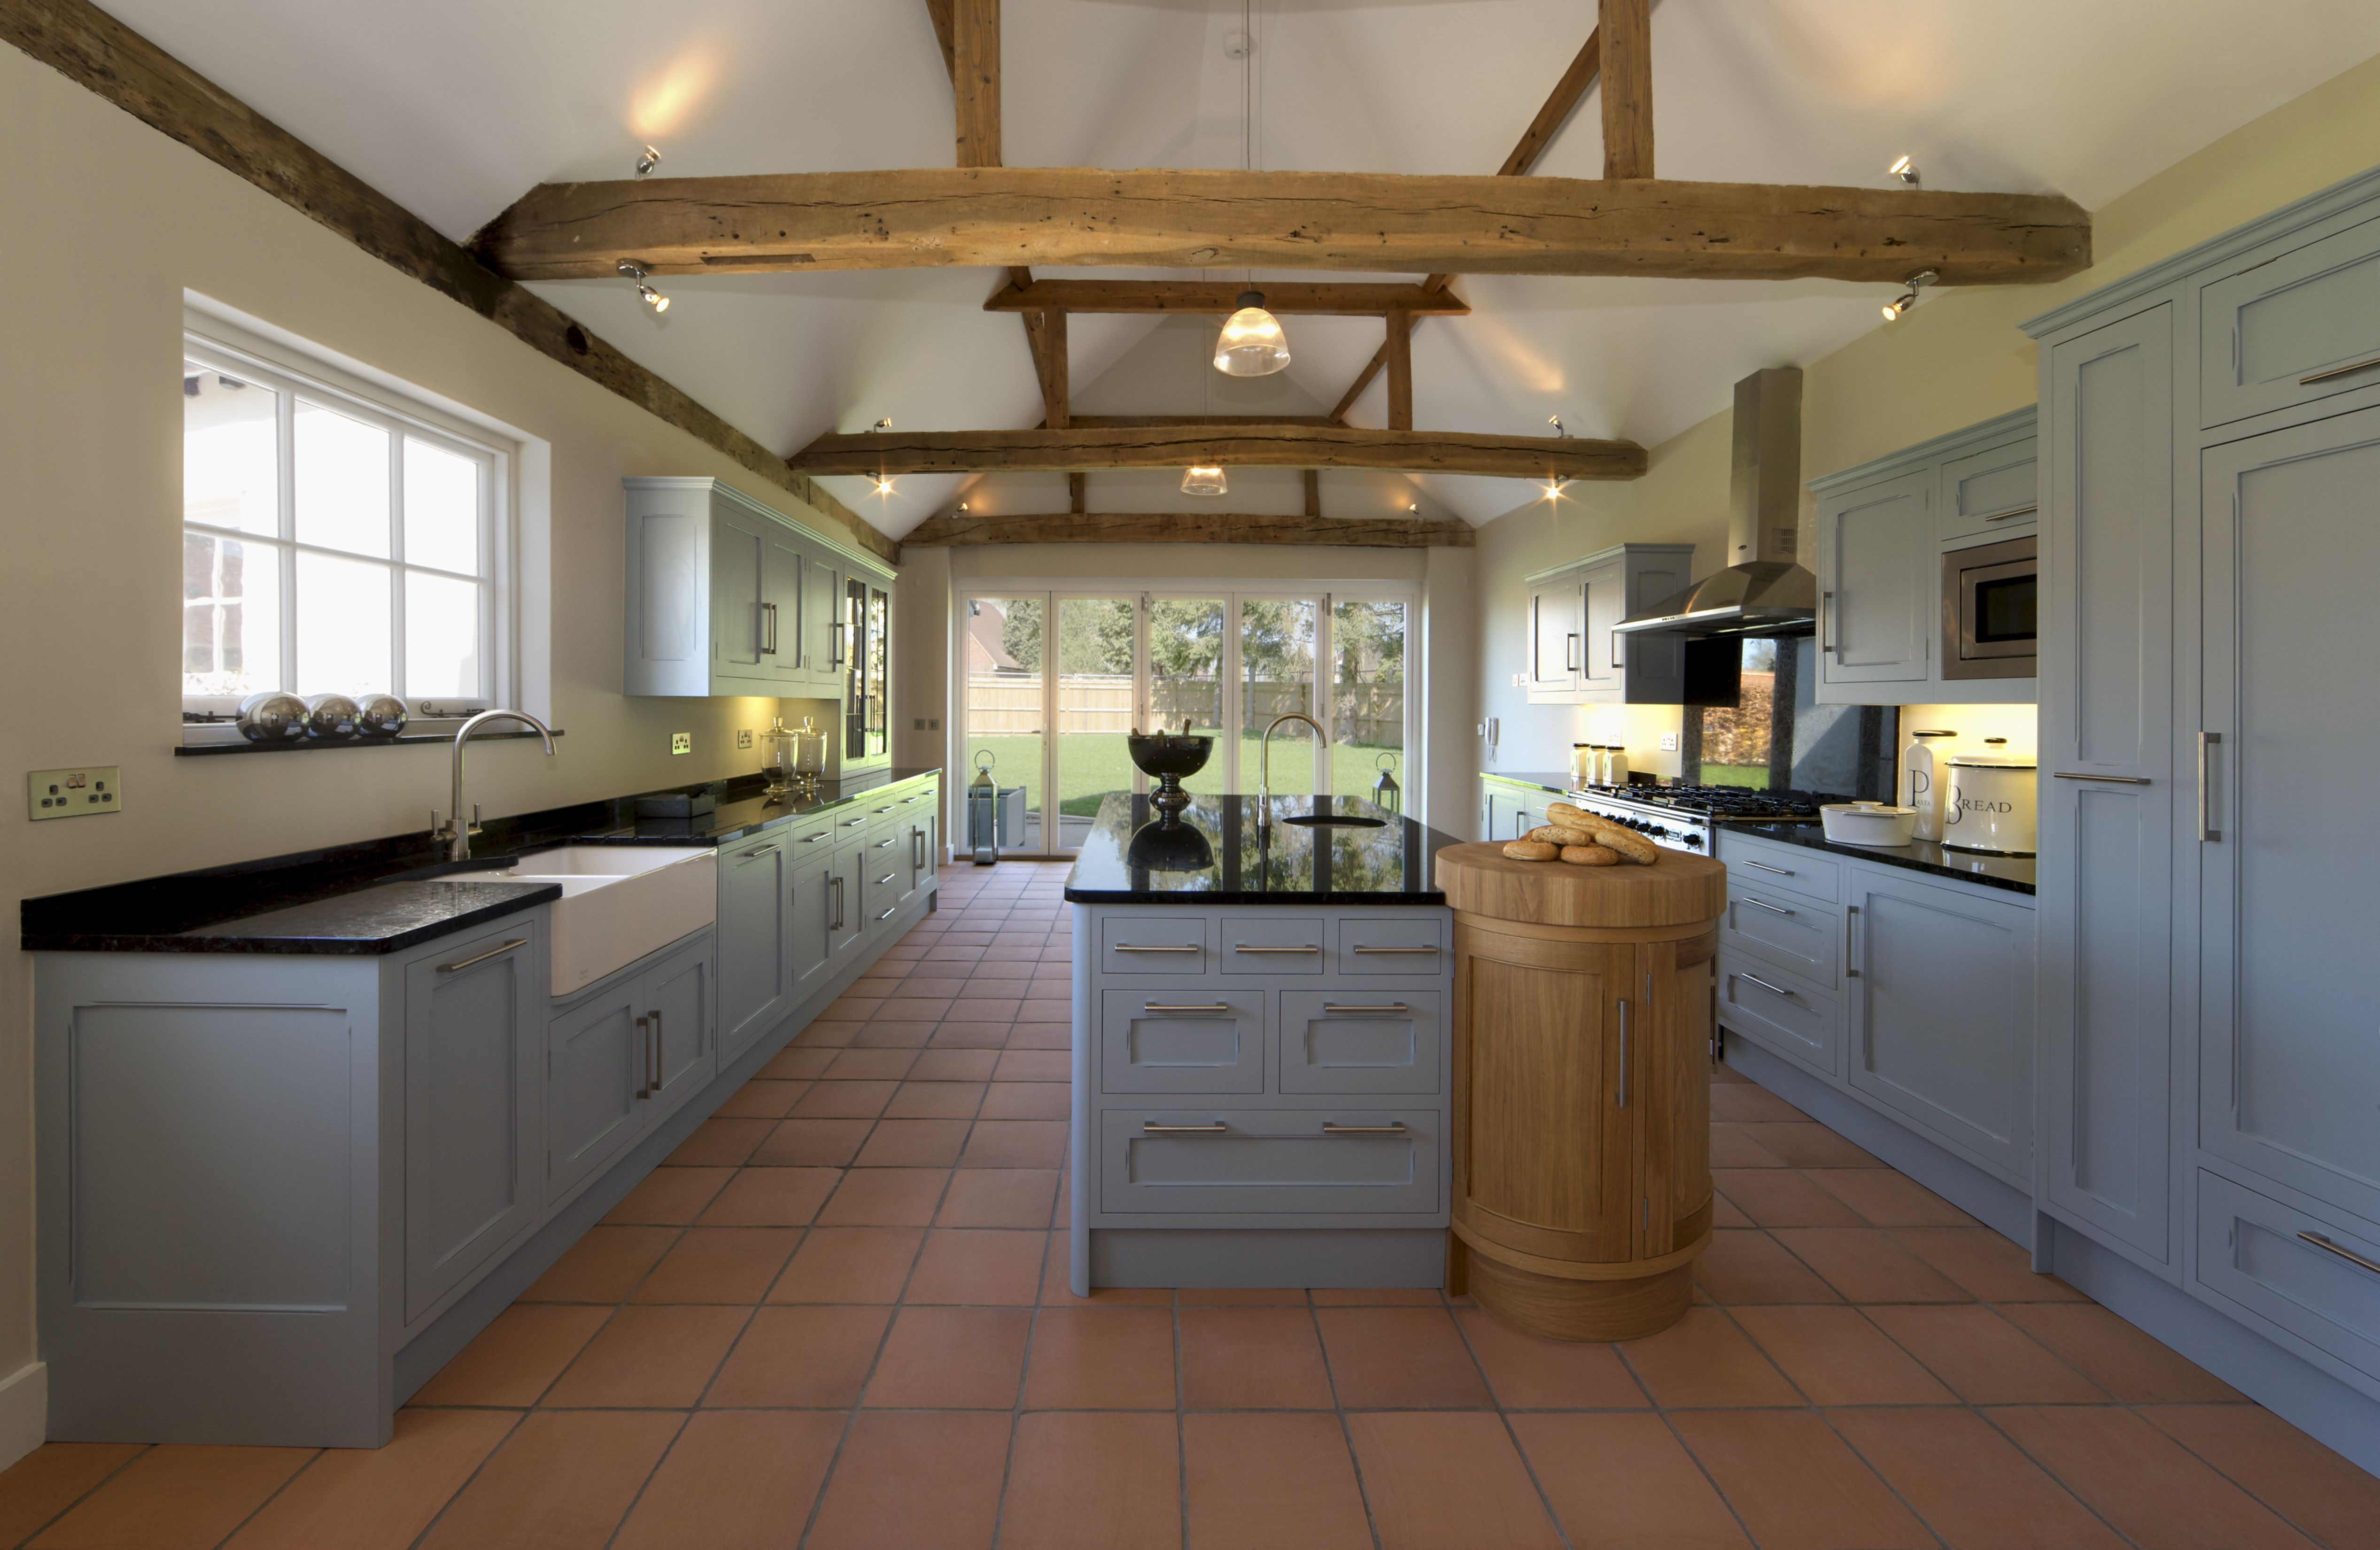 Decorate Using Farmhouse Style Of Country Without The Kitsch Country Kitchen Farmhouse Kitchen Style Farmhouse Kitchen Decor